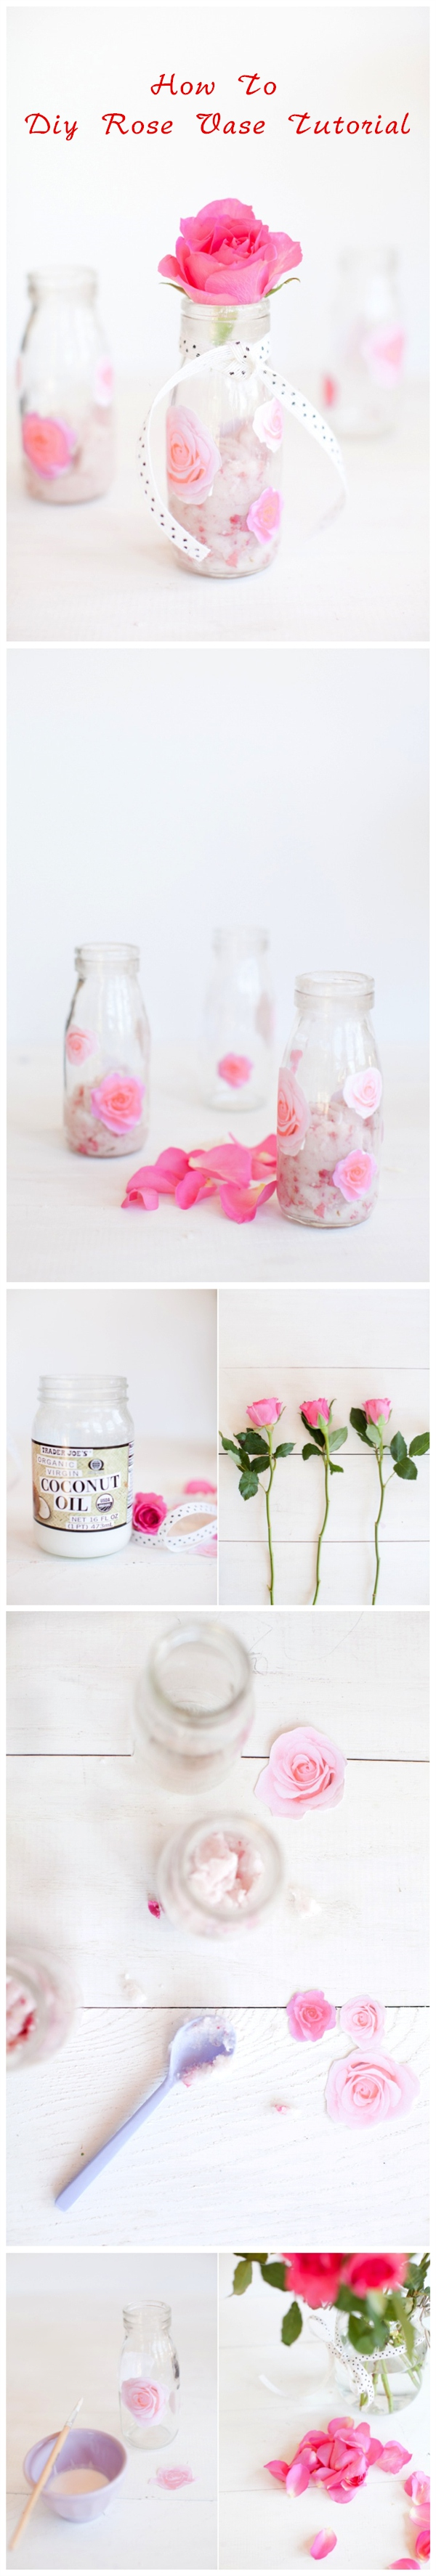 How To Diy Rose Vase Tutorial